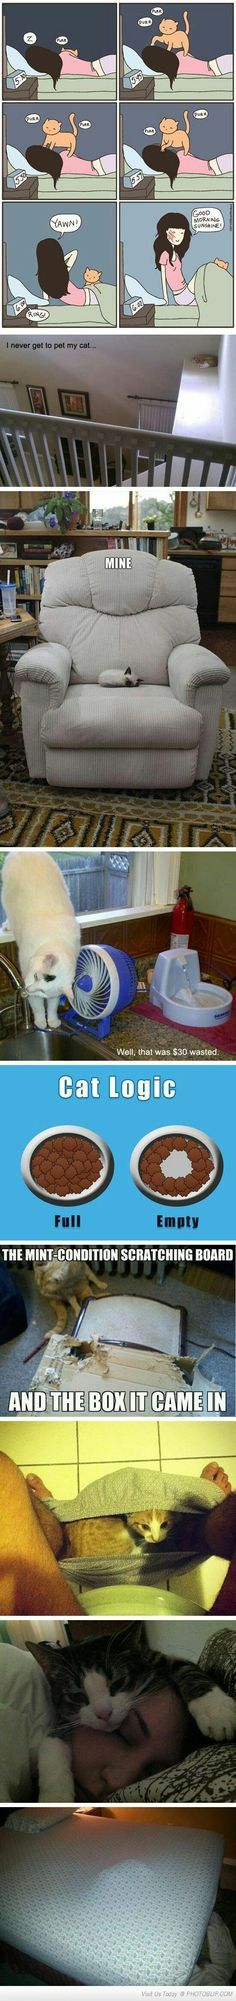 Why we love our cats or something like that...